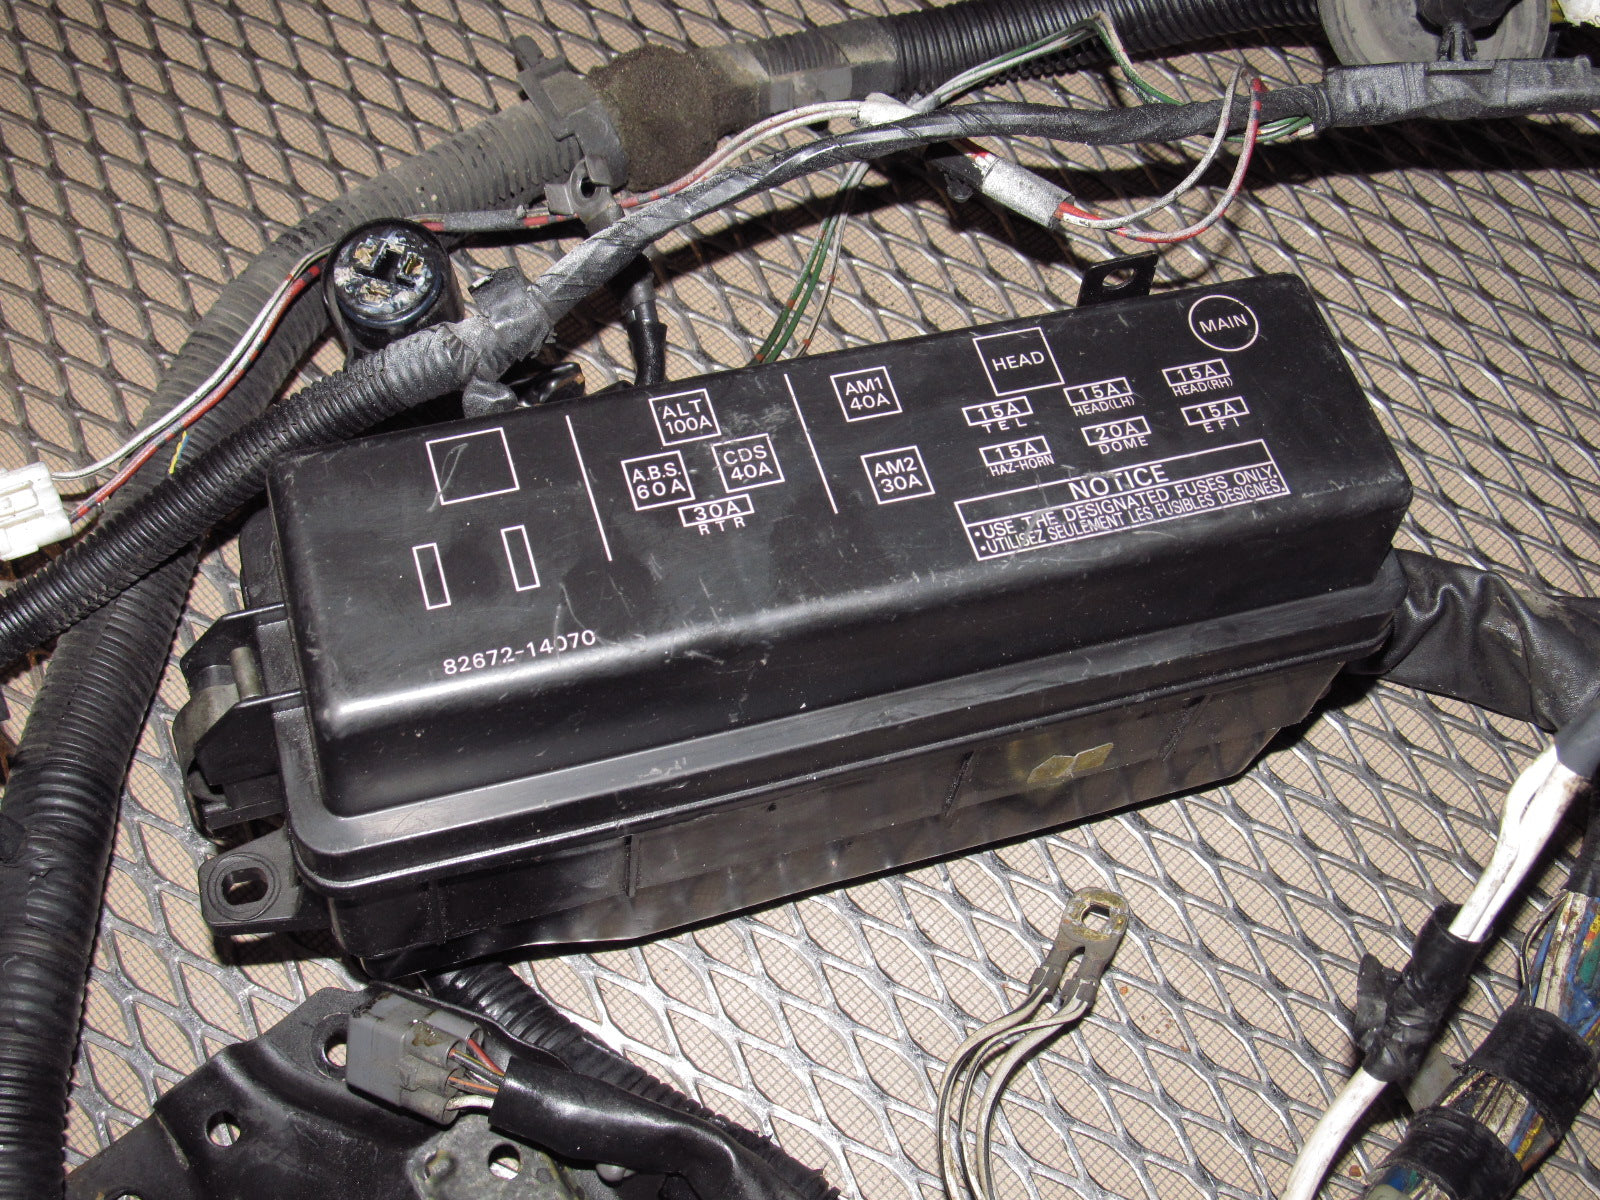 Toyota Supra Headlight Wiring Harness Electrical Diagrams Supera 89 90 91 92 Oem Fuse Box And Suspension